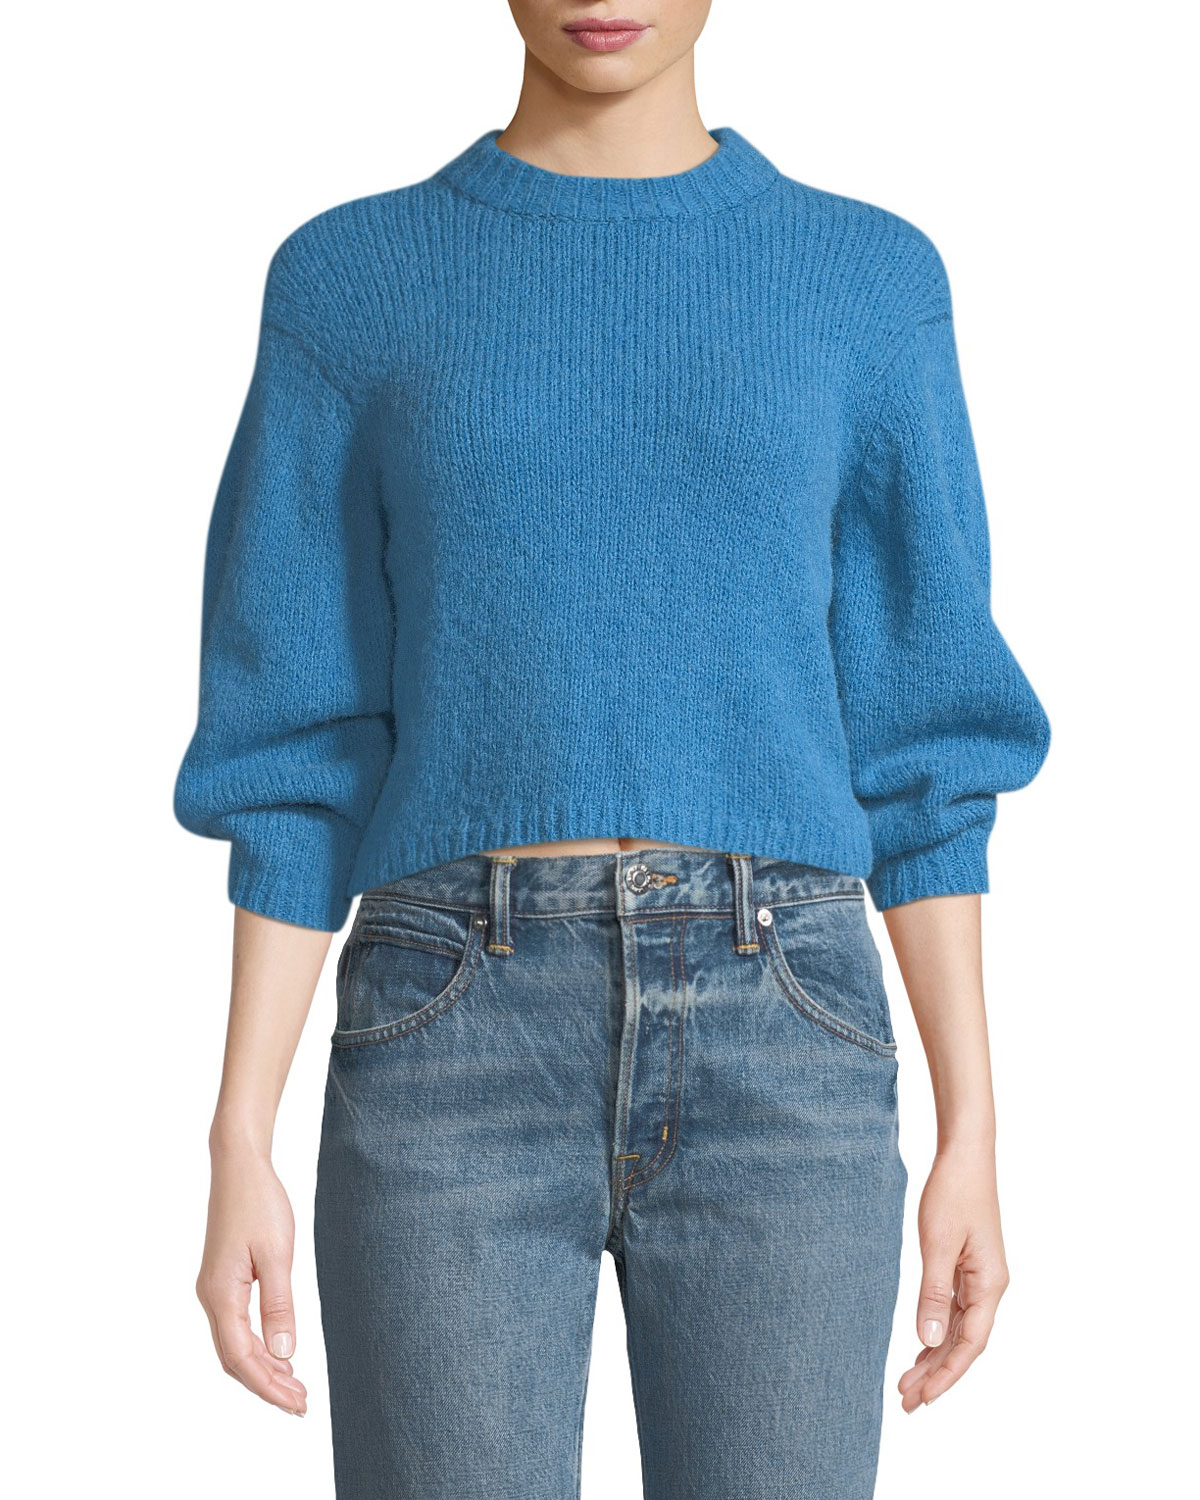 Cozette Alpaca & Wool Blend Crop Sweater in Blue